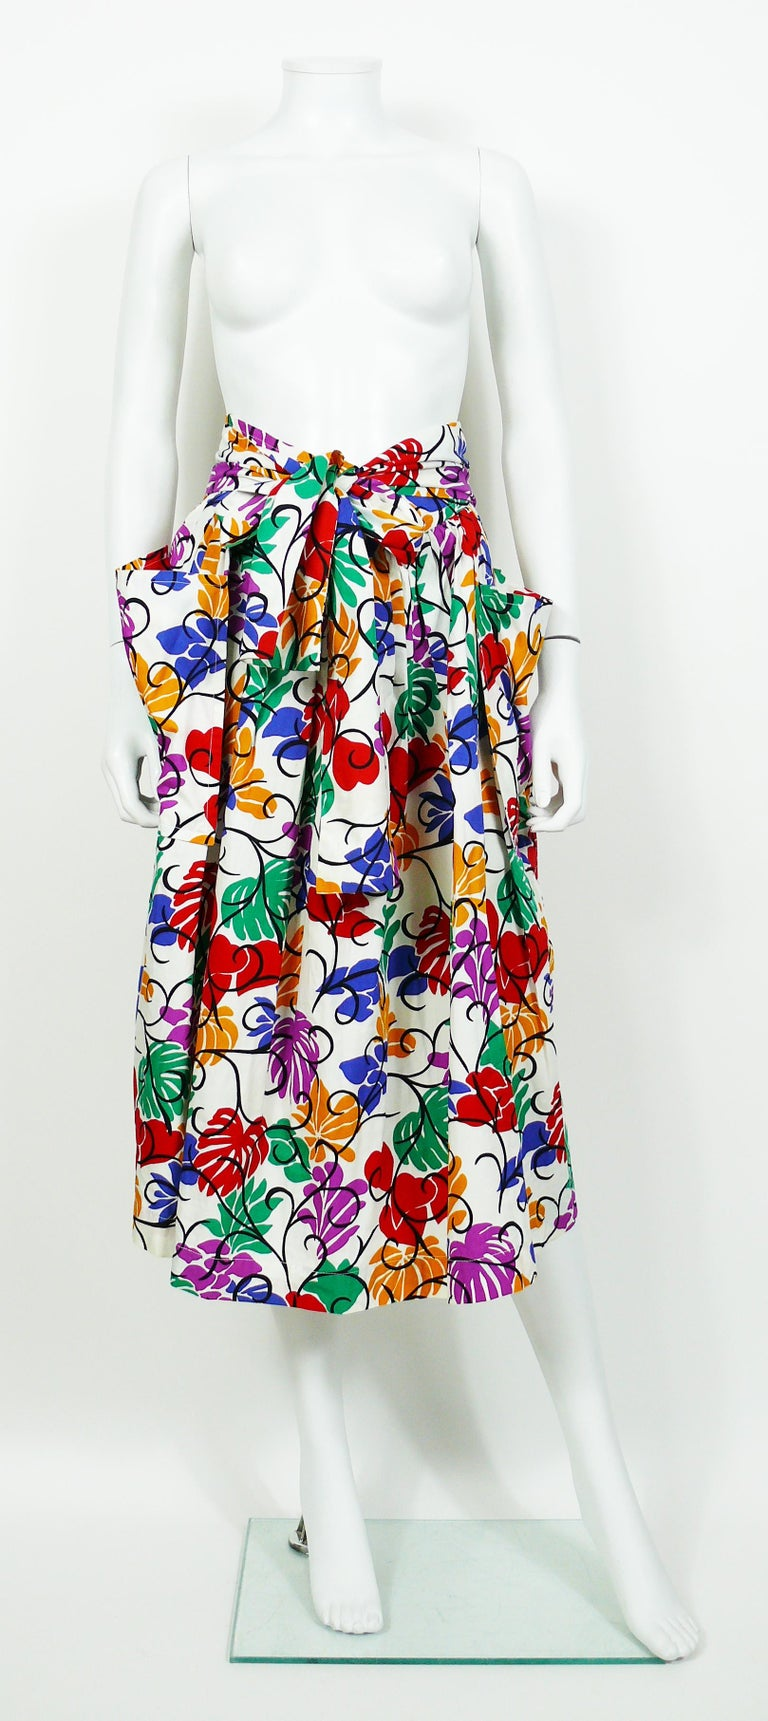 Yves Saint Laurent YSL Vintage Matisse Inspired Floral Cotton Sash Skirt In Good Condition For Sale In Nice, FR